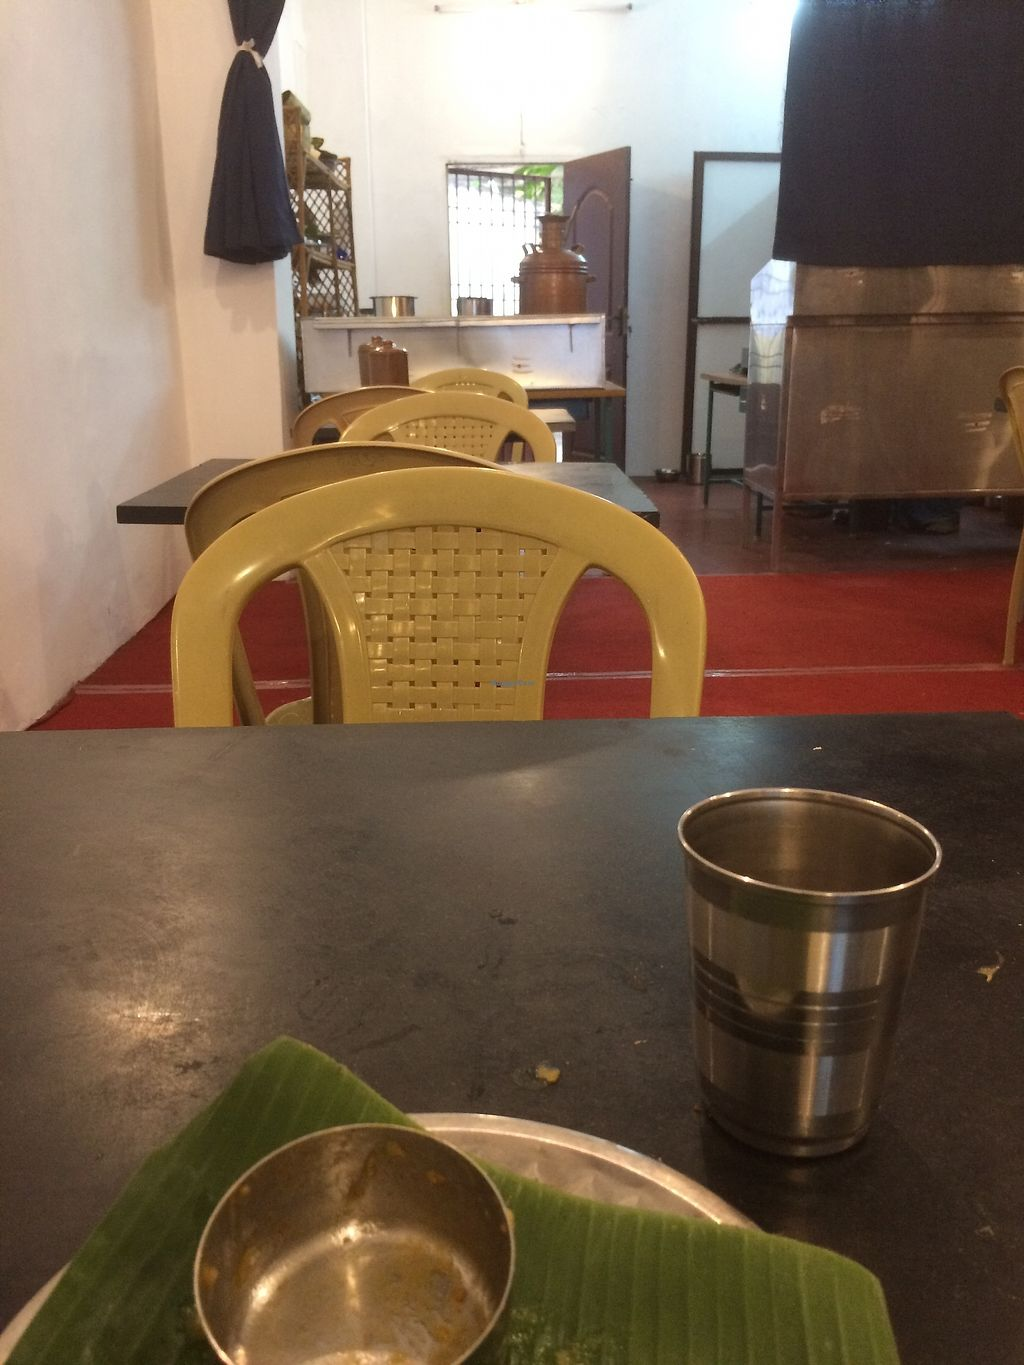 """Photo of Neithal Hotel  by <a href=""""/members/profile/Yo5h"""">Yo5h</a> <br/>simple interior <br/> March 6, 2018  - <a href='/contact/abuse/image/113774/367323'>Report</a>"""